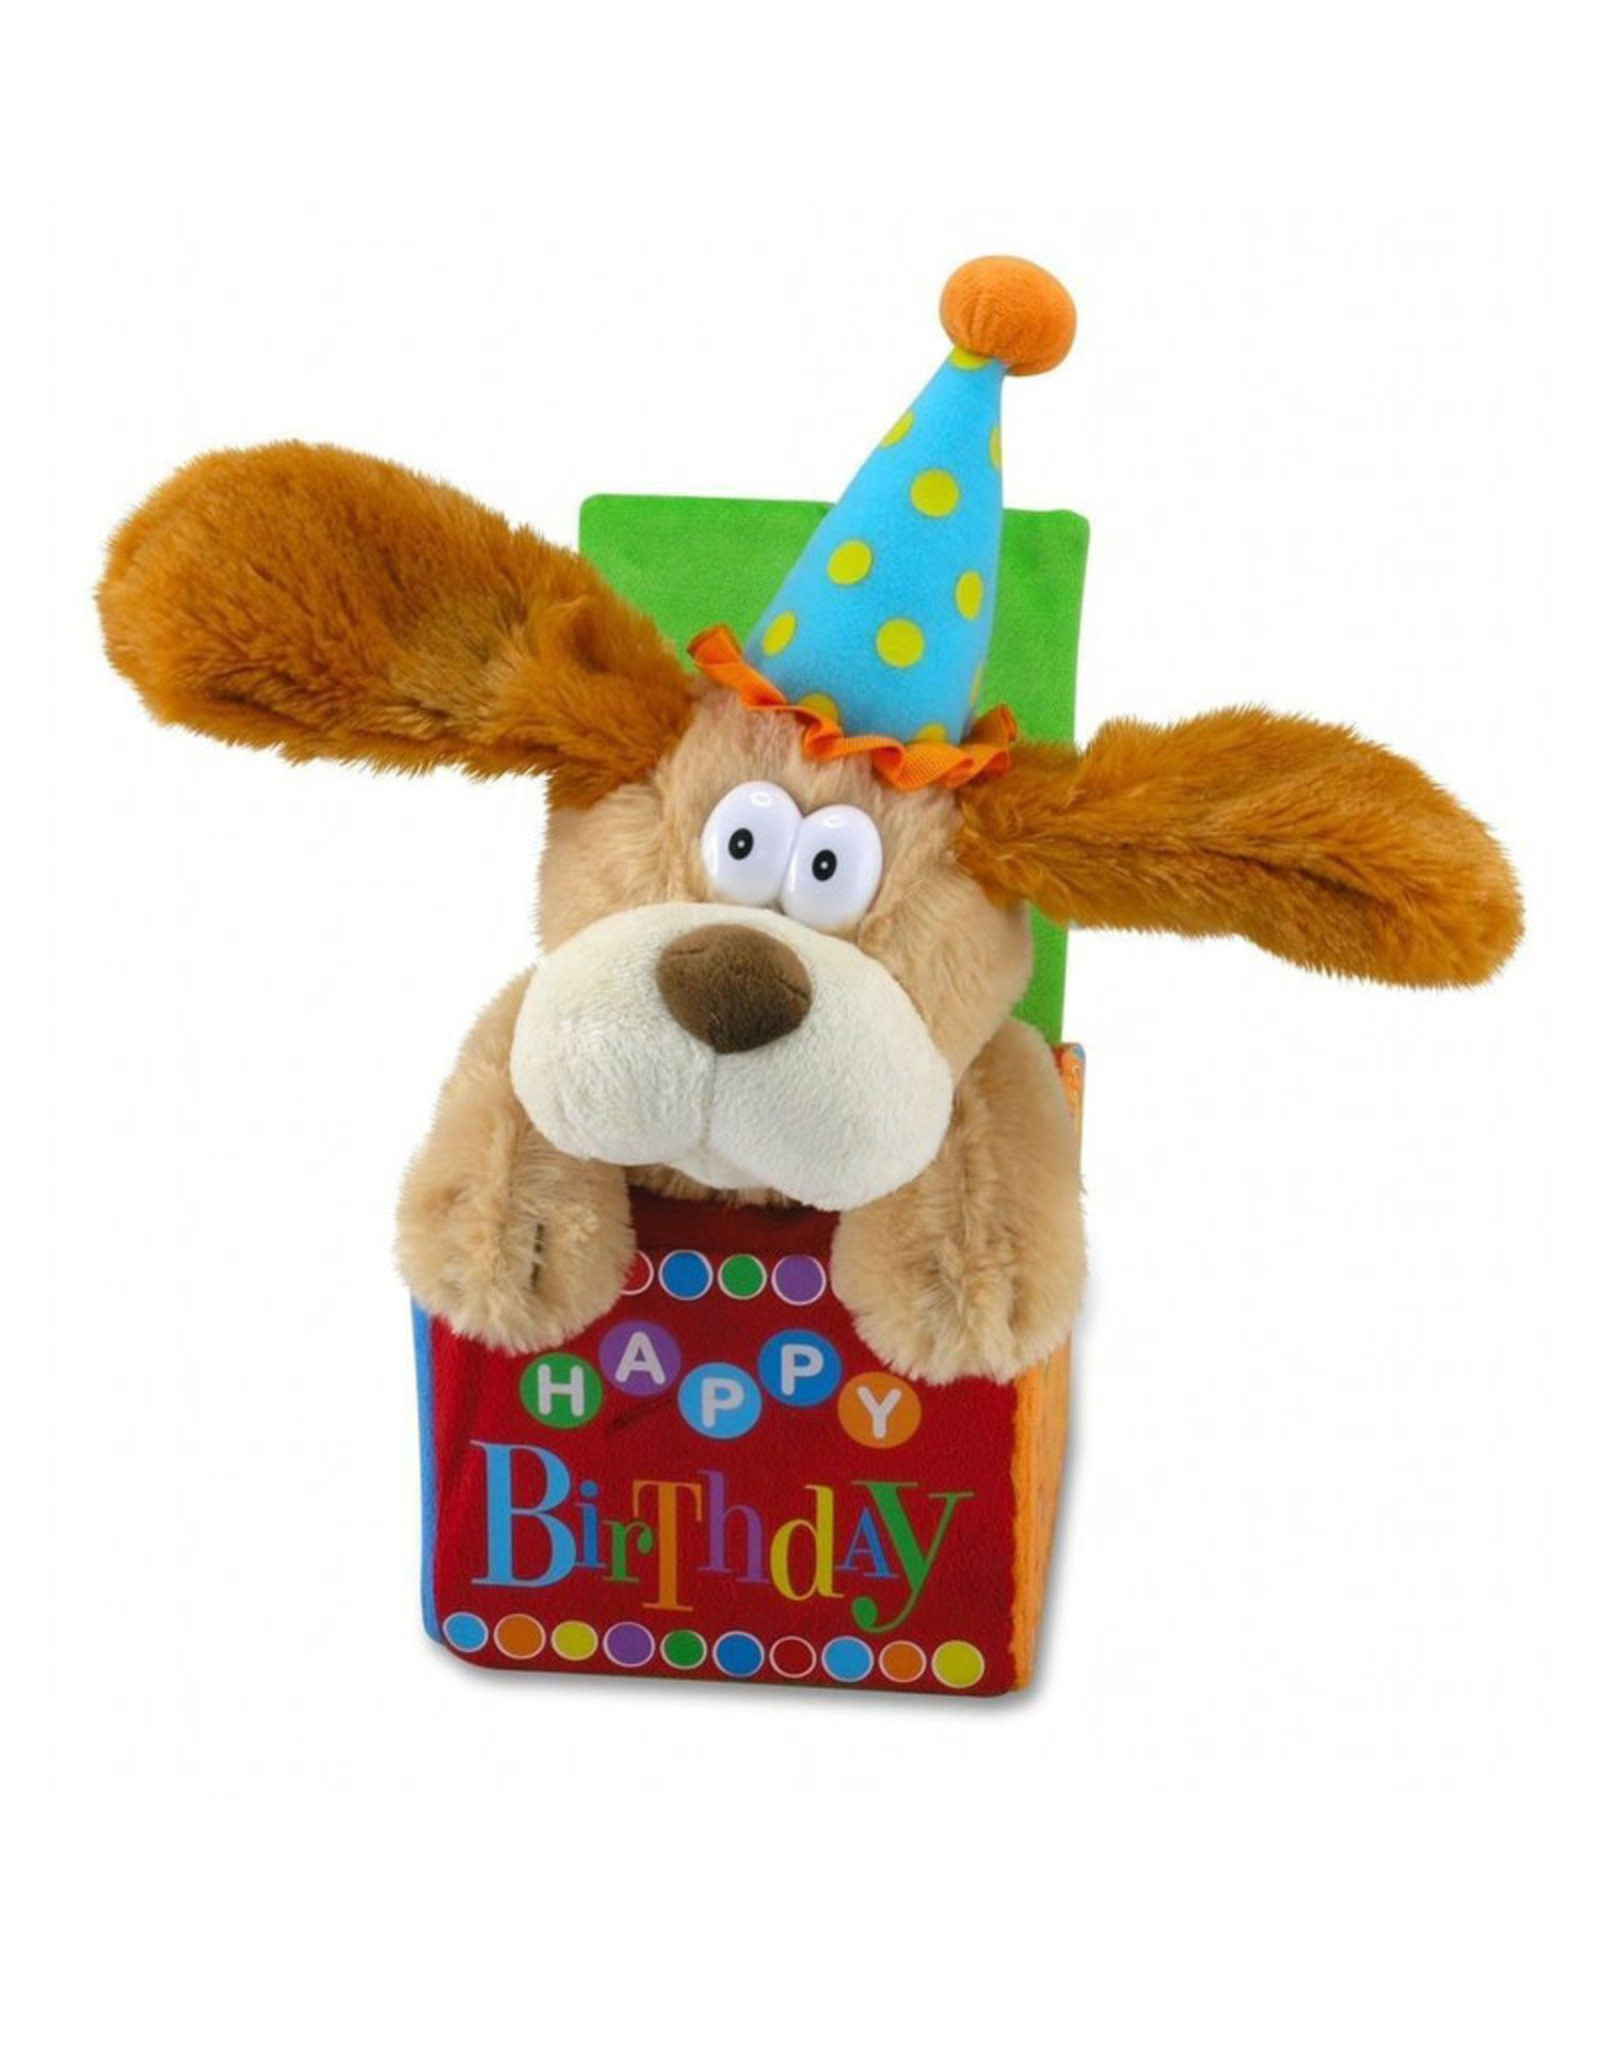 Dog Singing ( Cuddle Barn ) They Saylt's Your Birthday